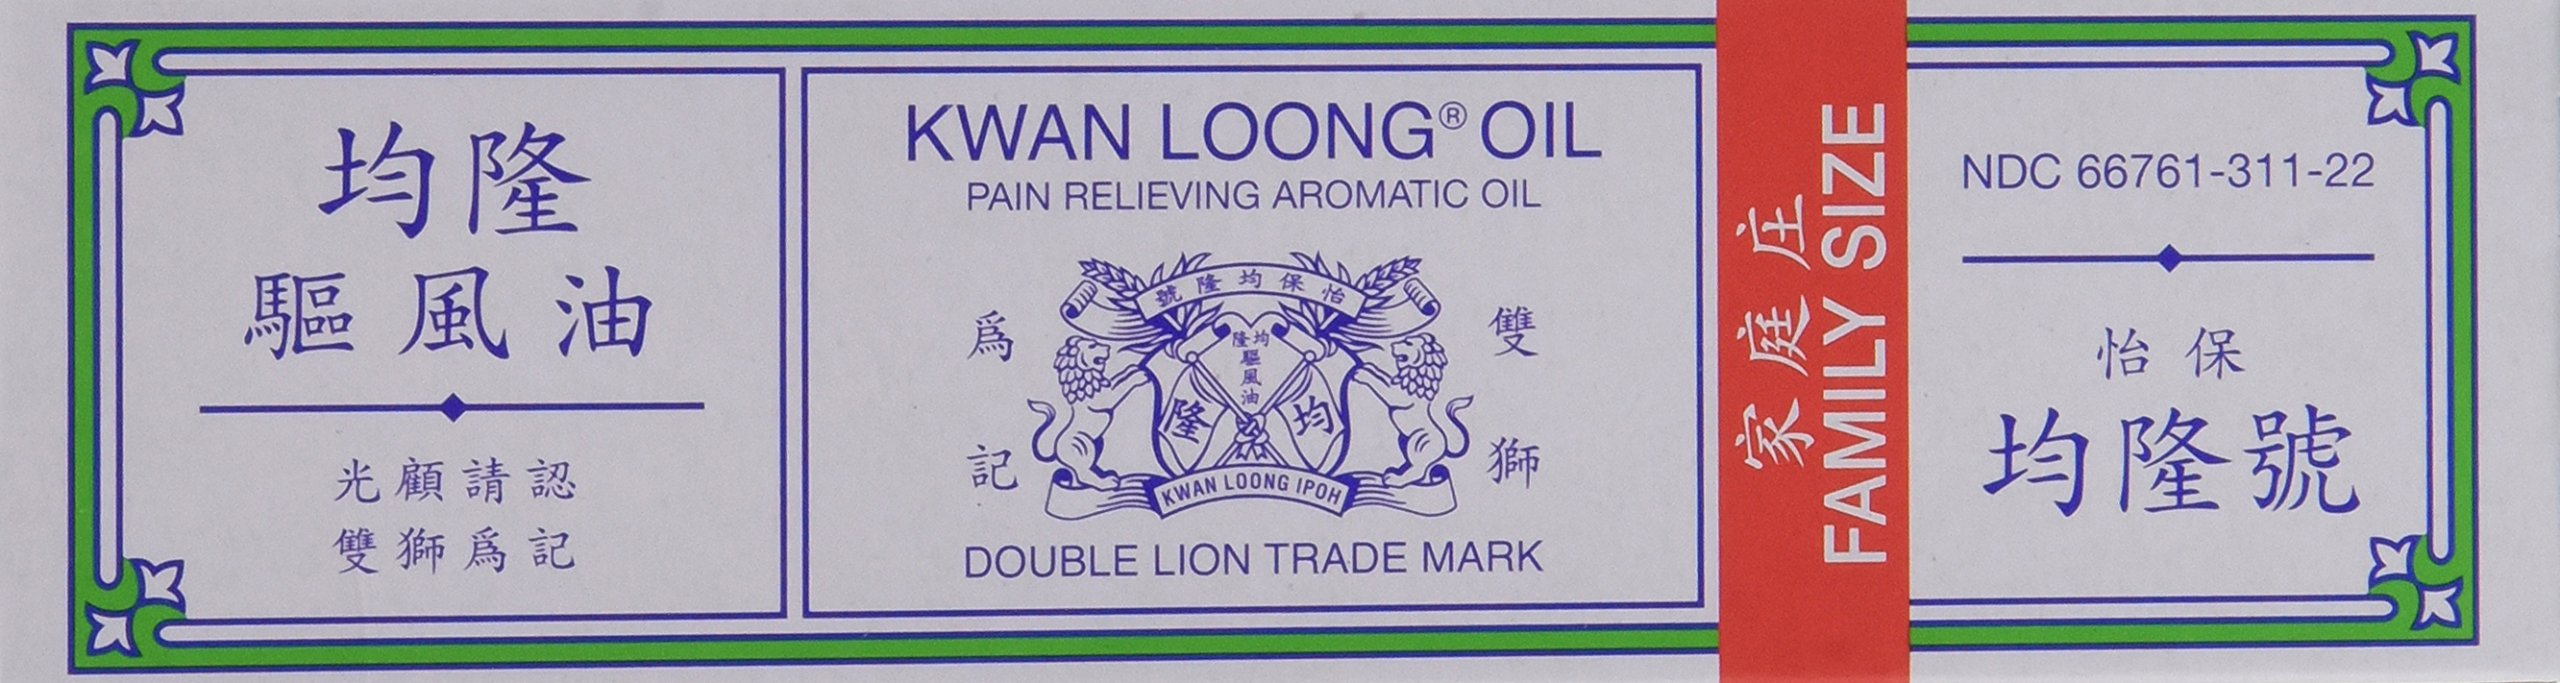 Kwan Loong Pain Relieving Aromatic Oil (2 fl oz) - 3 bottles by Kwan Loong